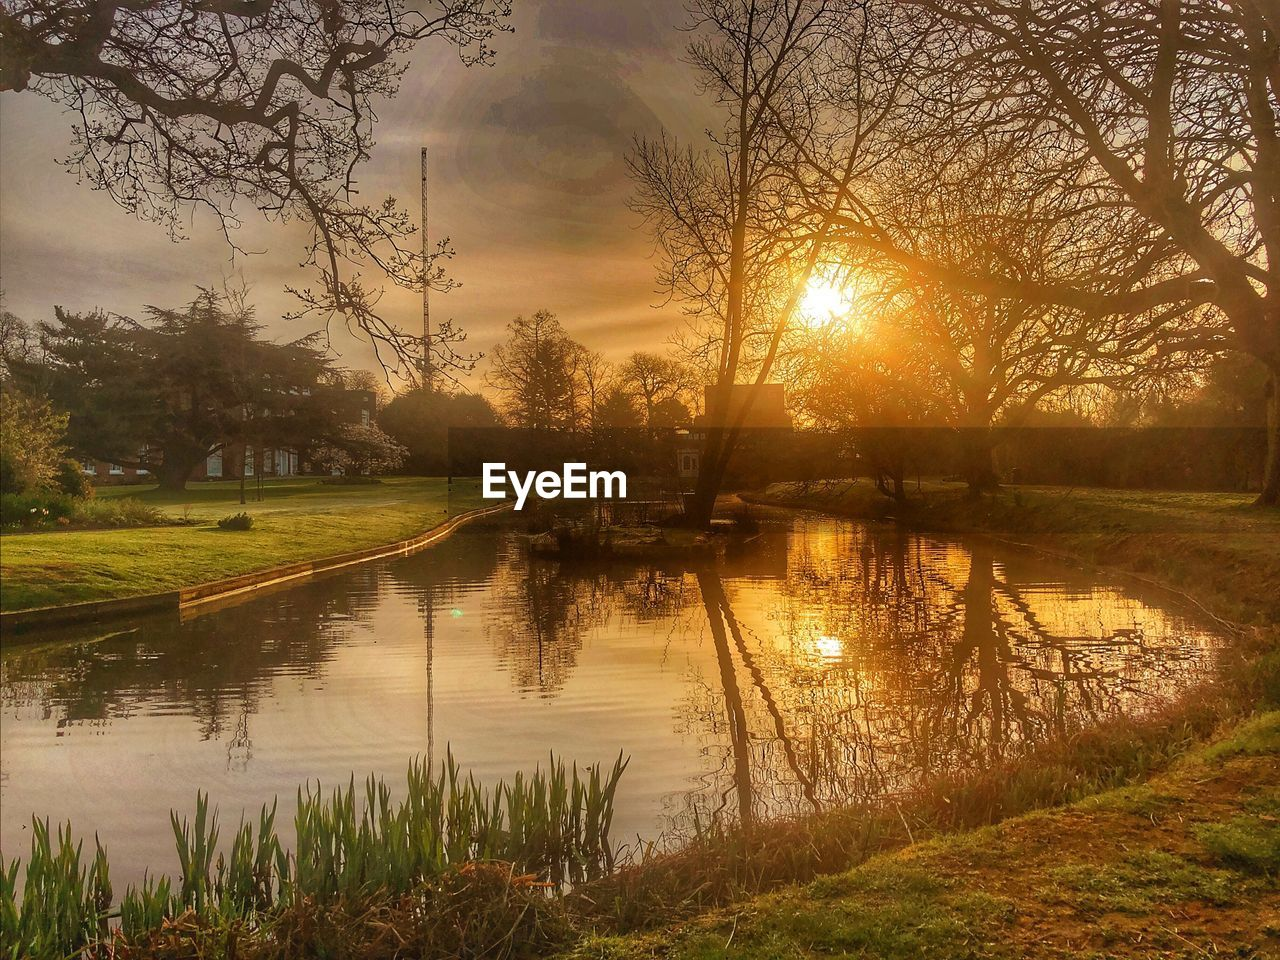 tree, water, plant, reflection, sky, tranquility, tranquil scene, beauty in nature, scenics - nature, sunset, lake, sun, nature, no people, sunlight, grass, non-urban scene, idyllic, sunbeam, outdoors, lens flare, bright